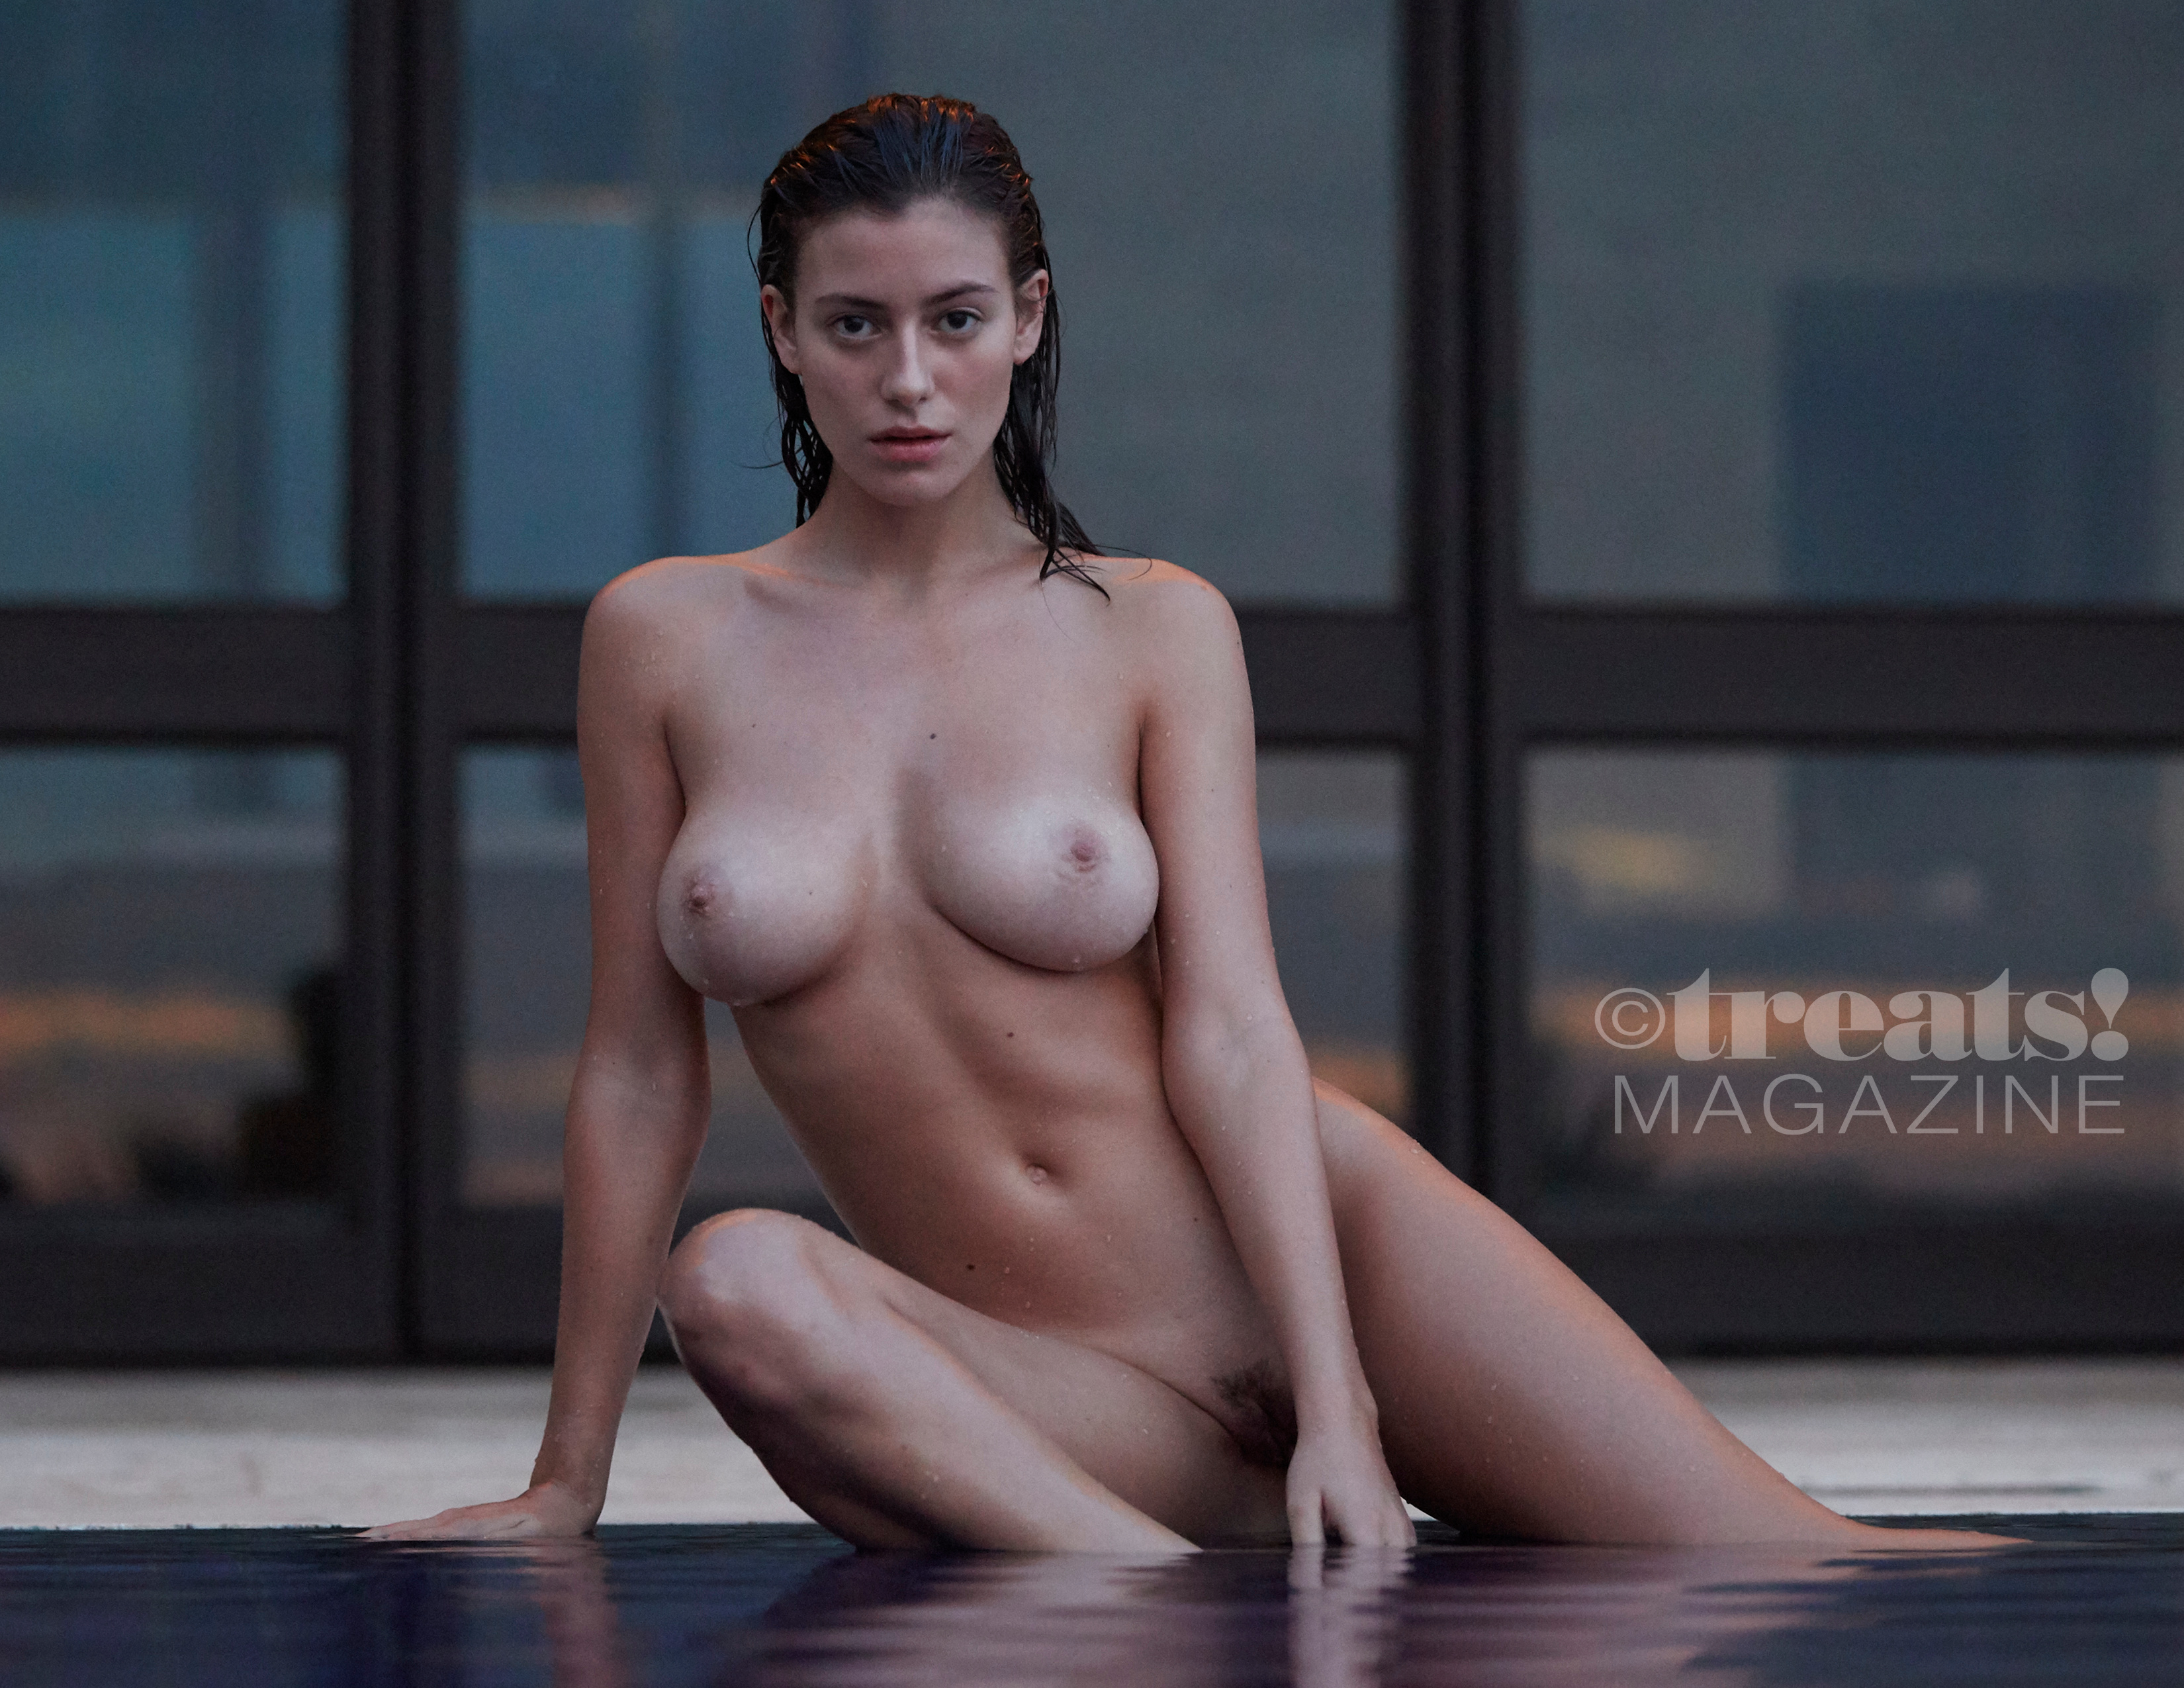 alejandra-guilmant-perfect-nude-body-erotic-treats-magazine-by-david-bellemere-35